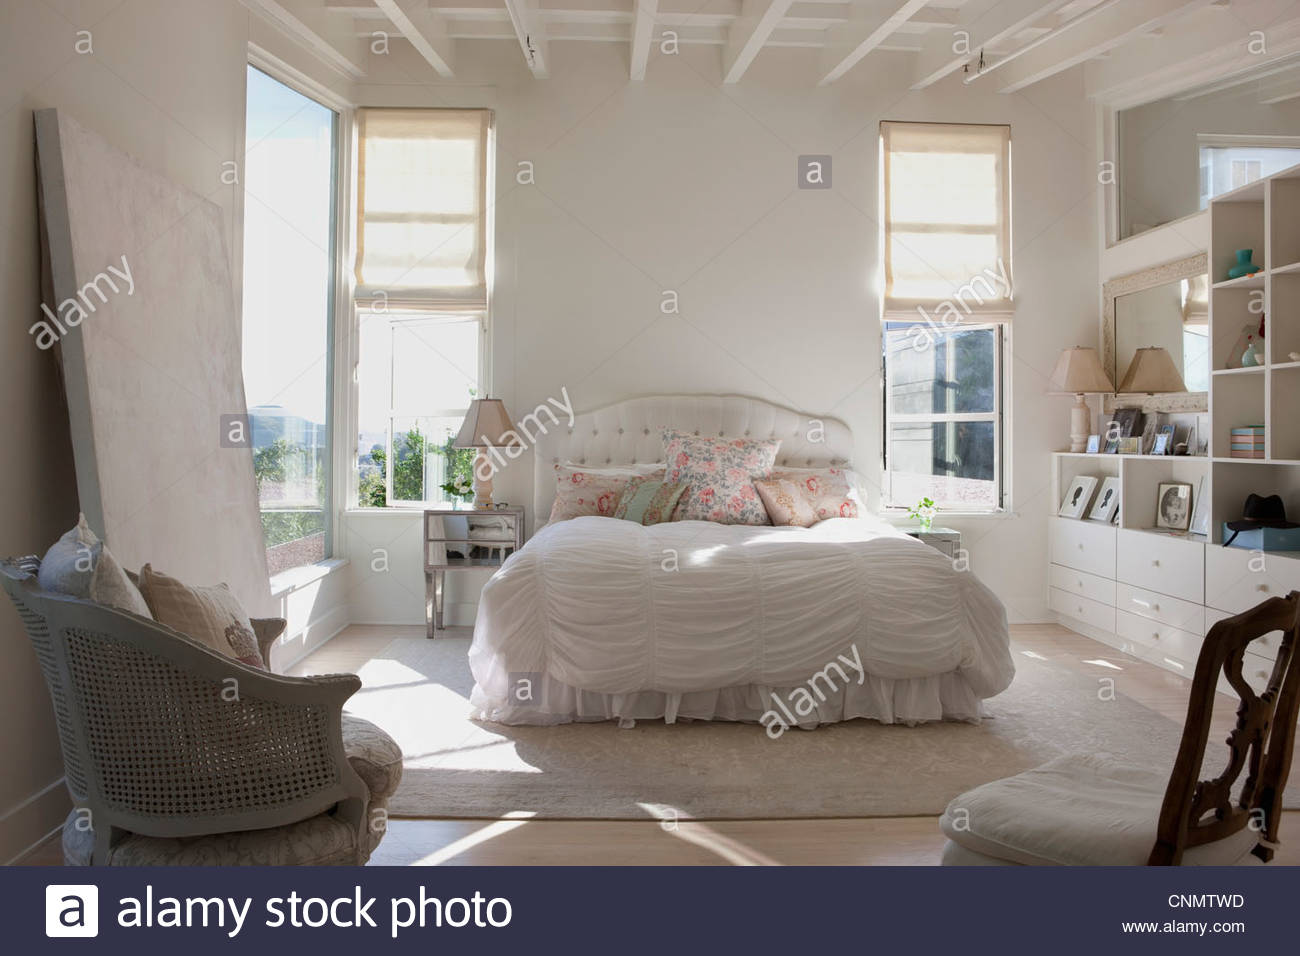 Chairs and bed in ornate bedroom - Stock Image